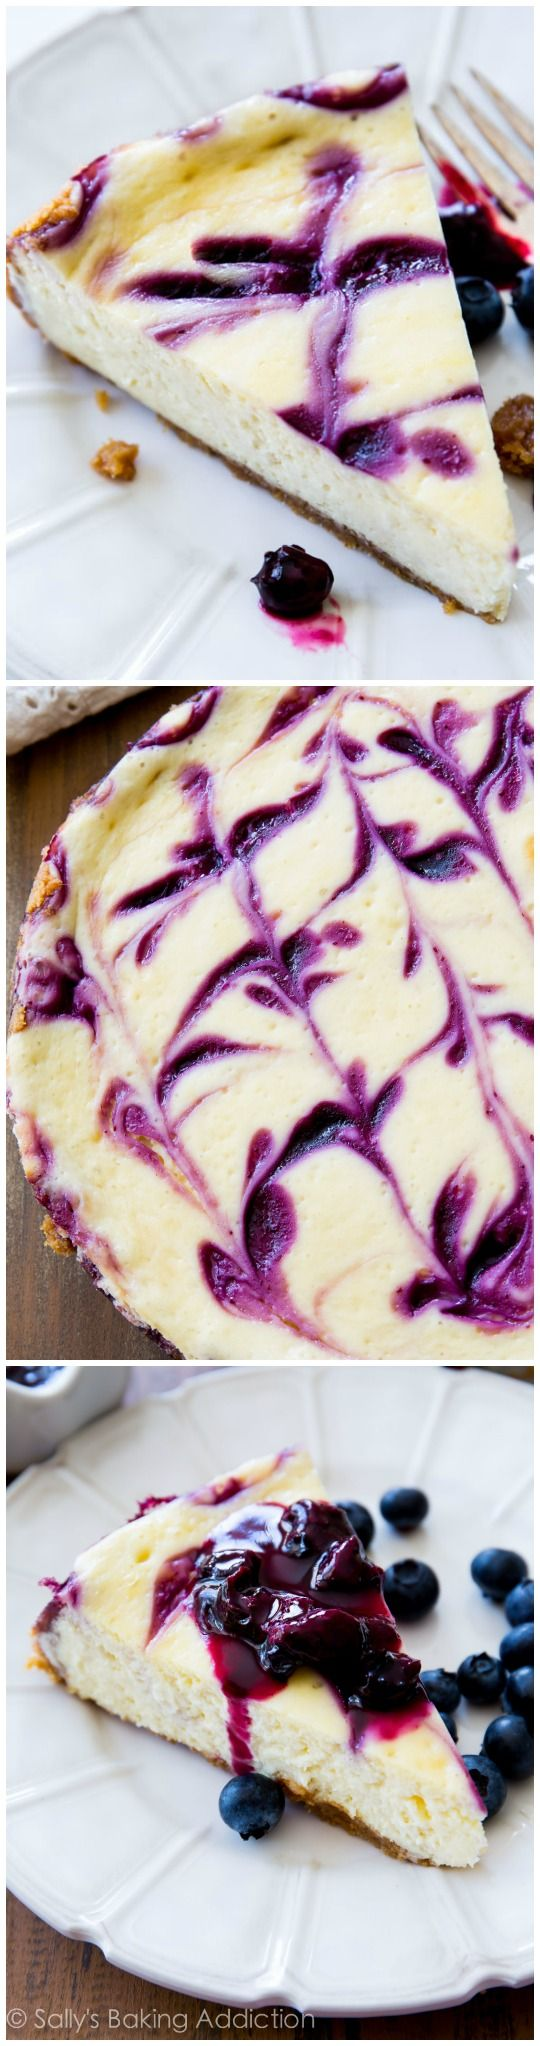 Ultra creamy homemade cheesecake swirled with sweet blueberry sauce. Everyone always begs for seconds!